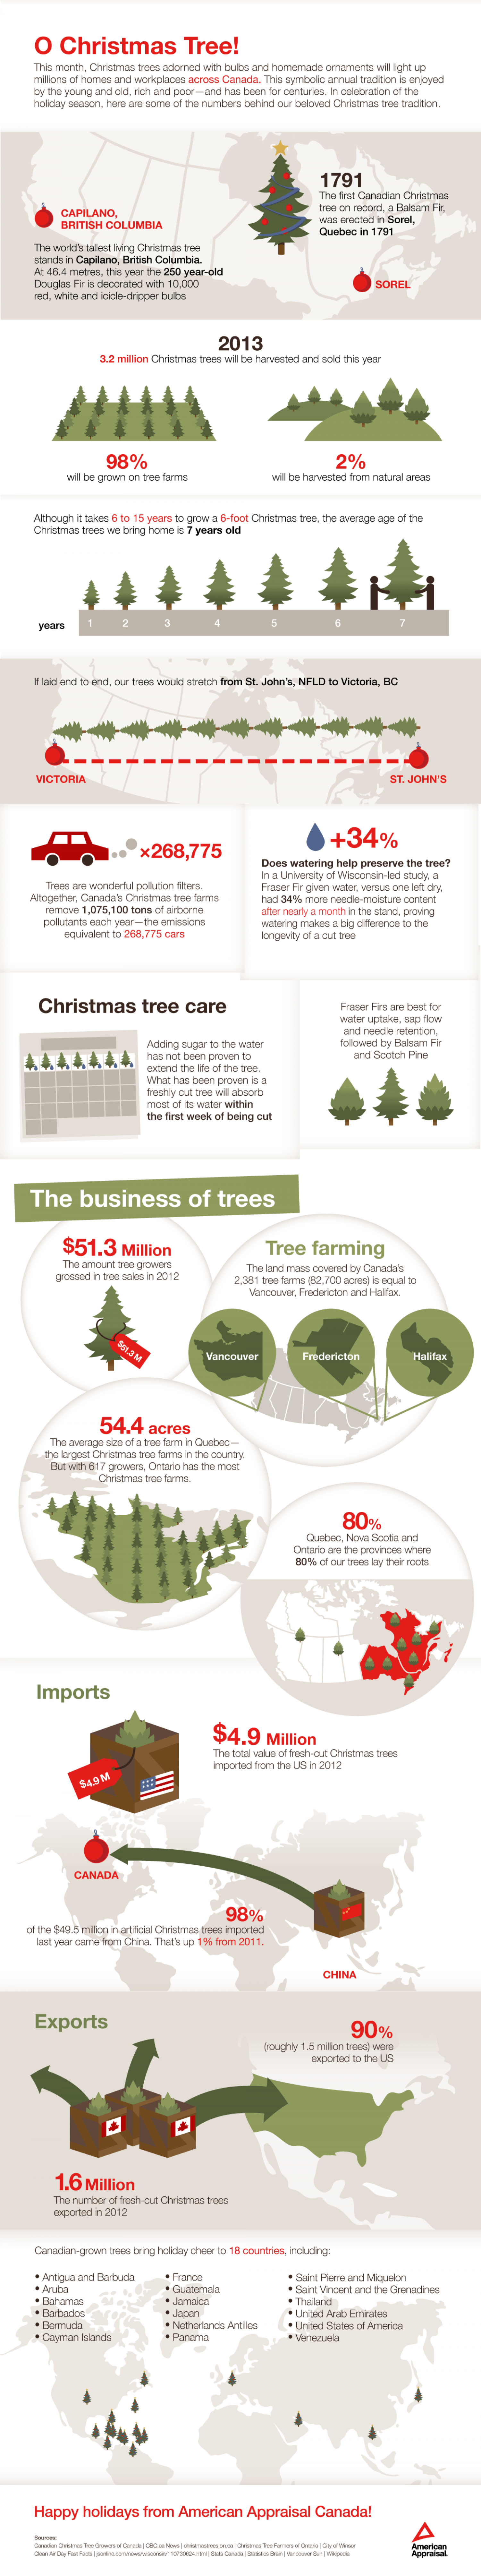 O Christmas Tree Infographic